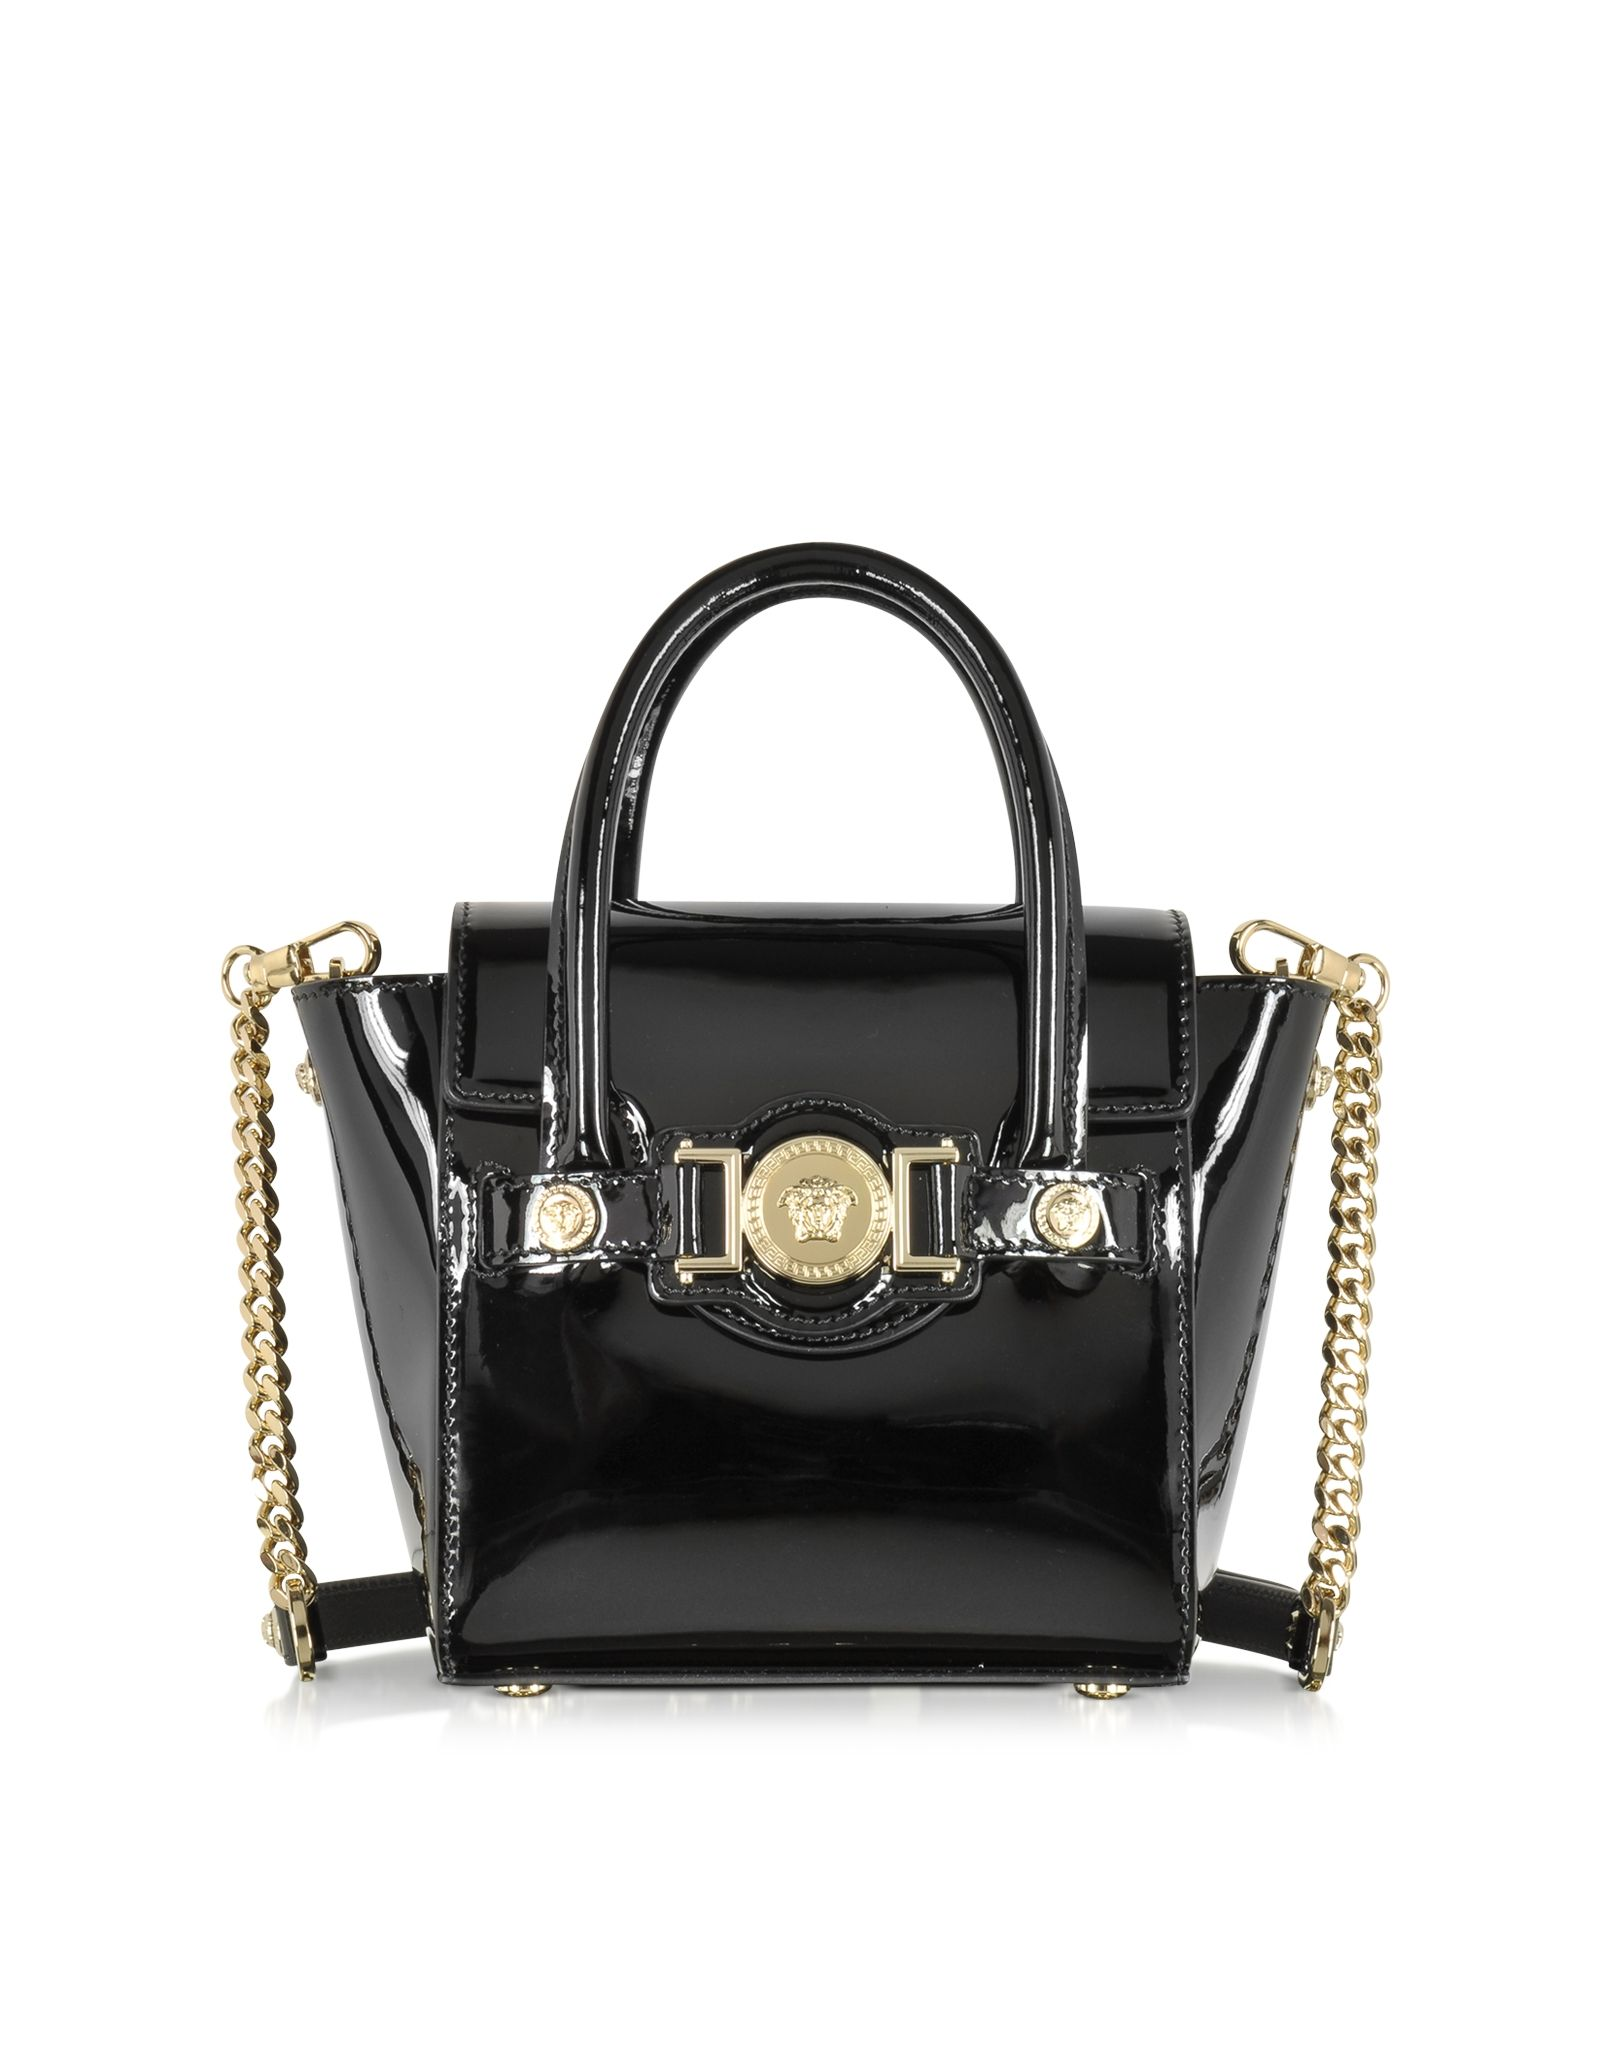 Versace Black Patent Leather Signature Mini Bag at FORZIERI 32af2a6d39e1e